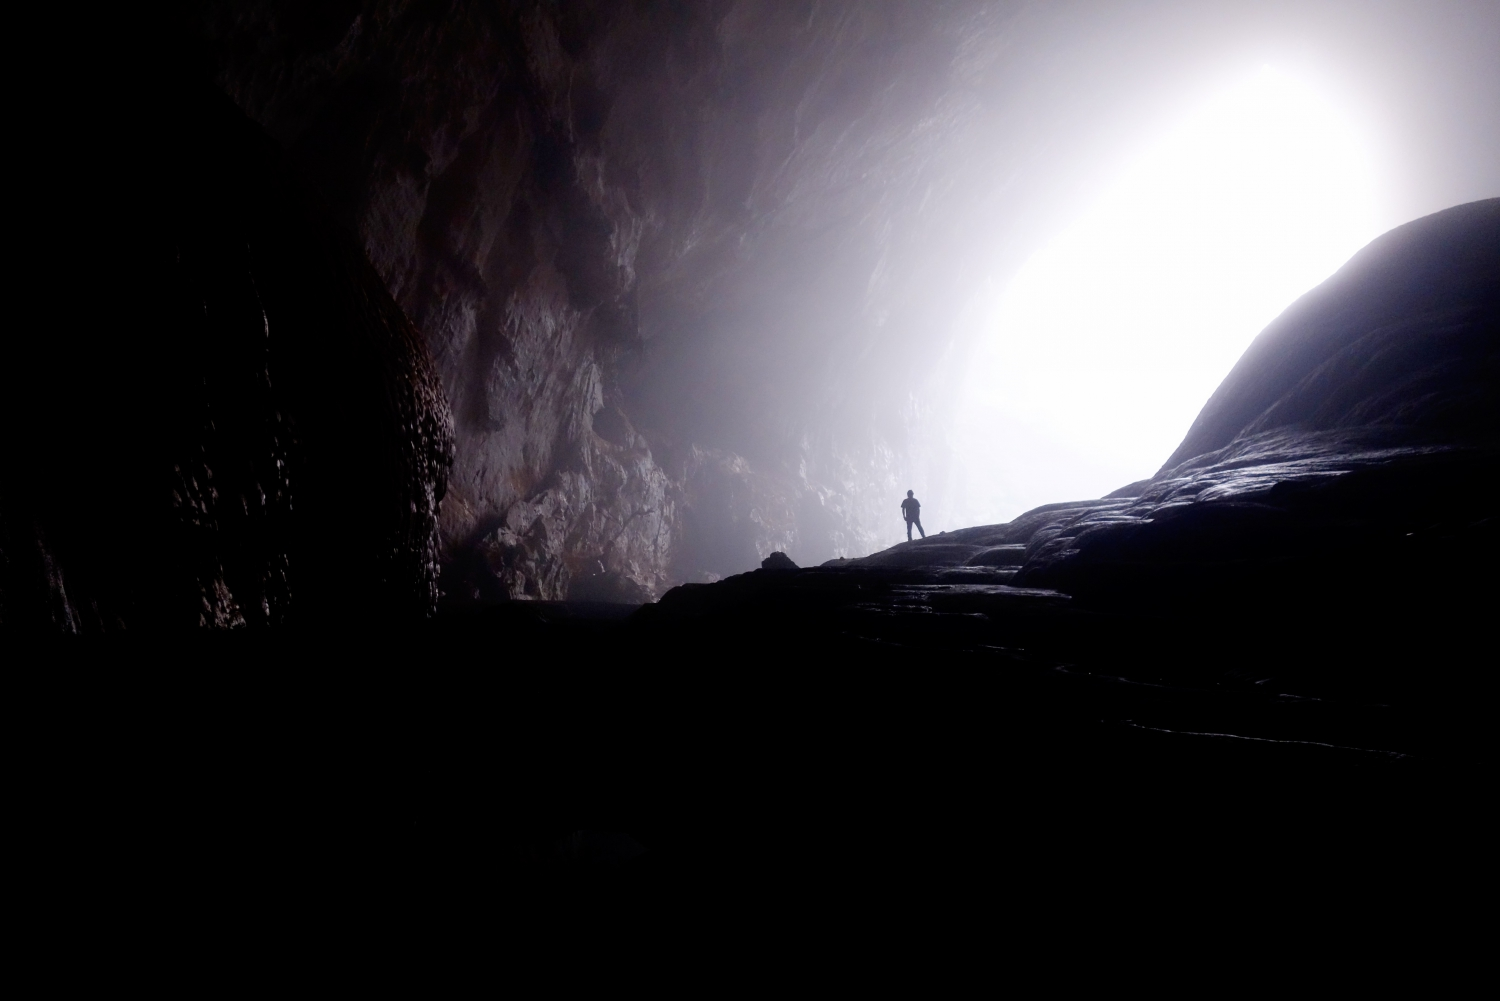 Son Doong Cave and the Phong Nha Region